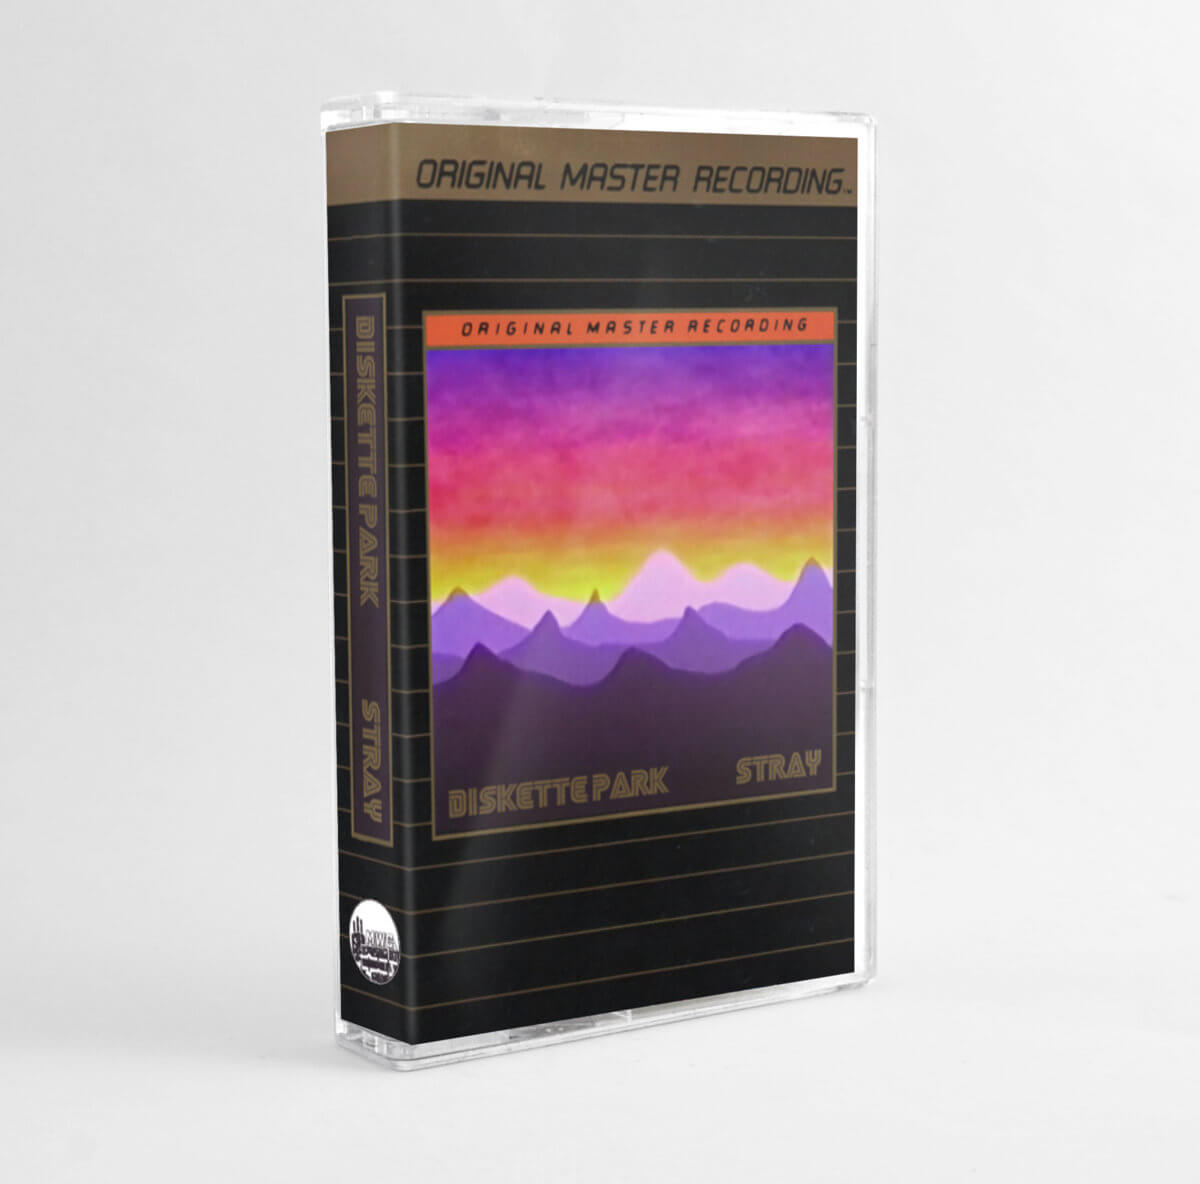 Stray by Diskette Park (Limited Edition CS) 1